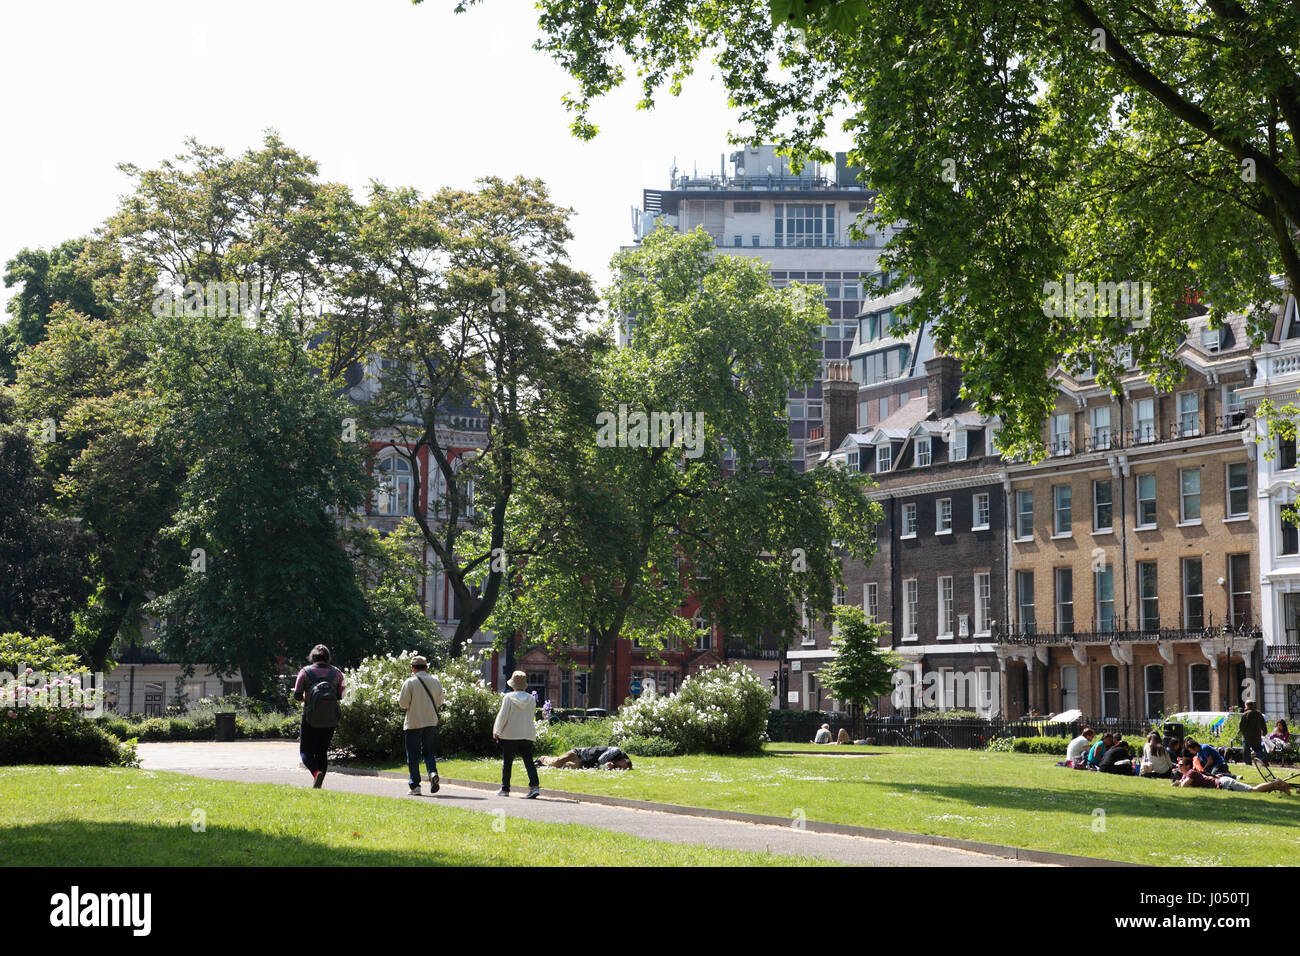 Grays Inn Square gardens, Camden, London - Stock Image